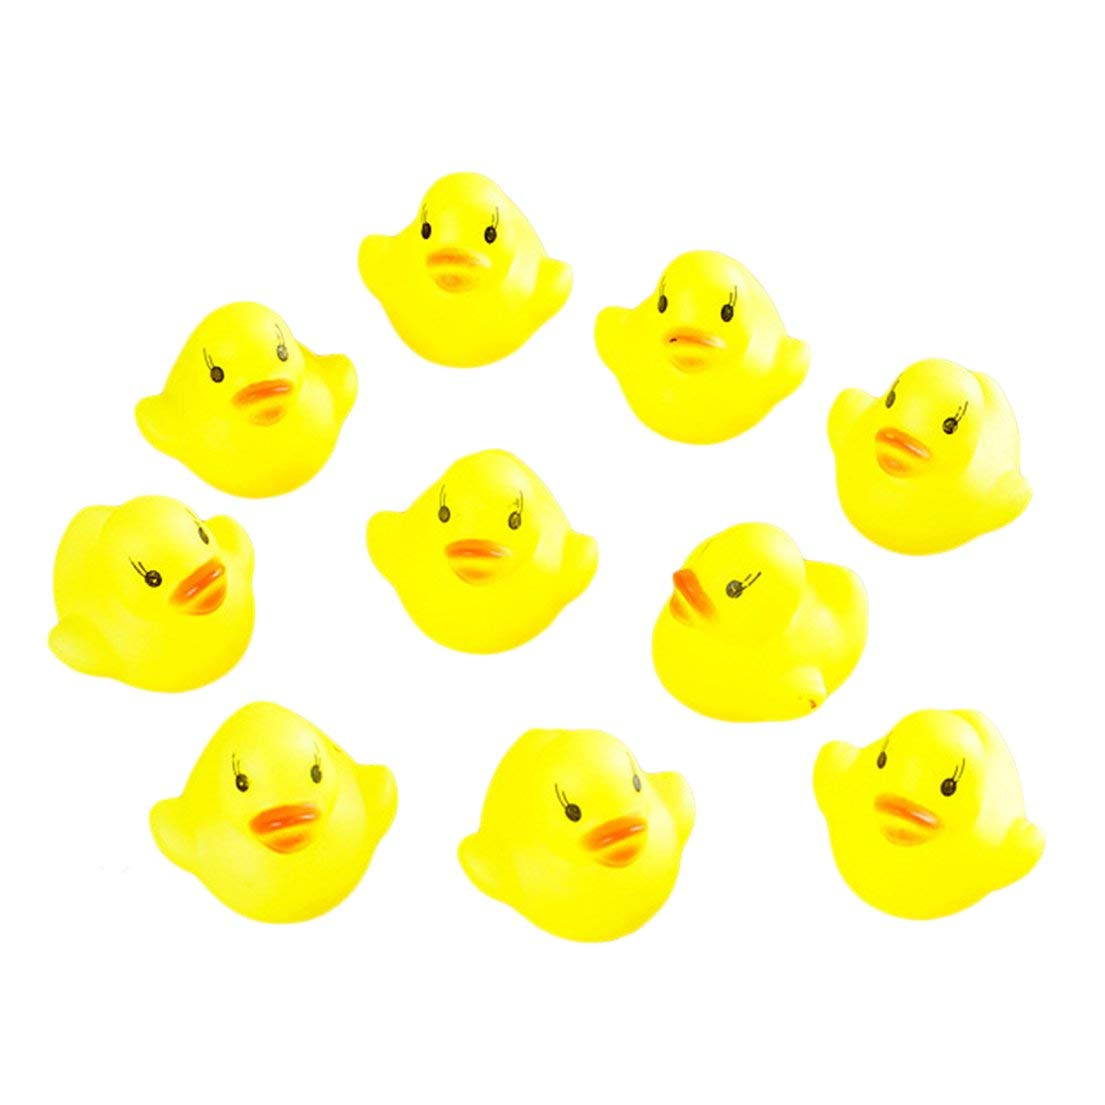 10pcs Baby Bathing Bath Tub Toys Mini Rubber Squeaky Float Duck Yellow ND